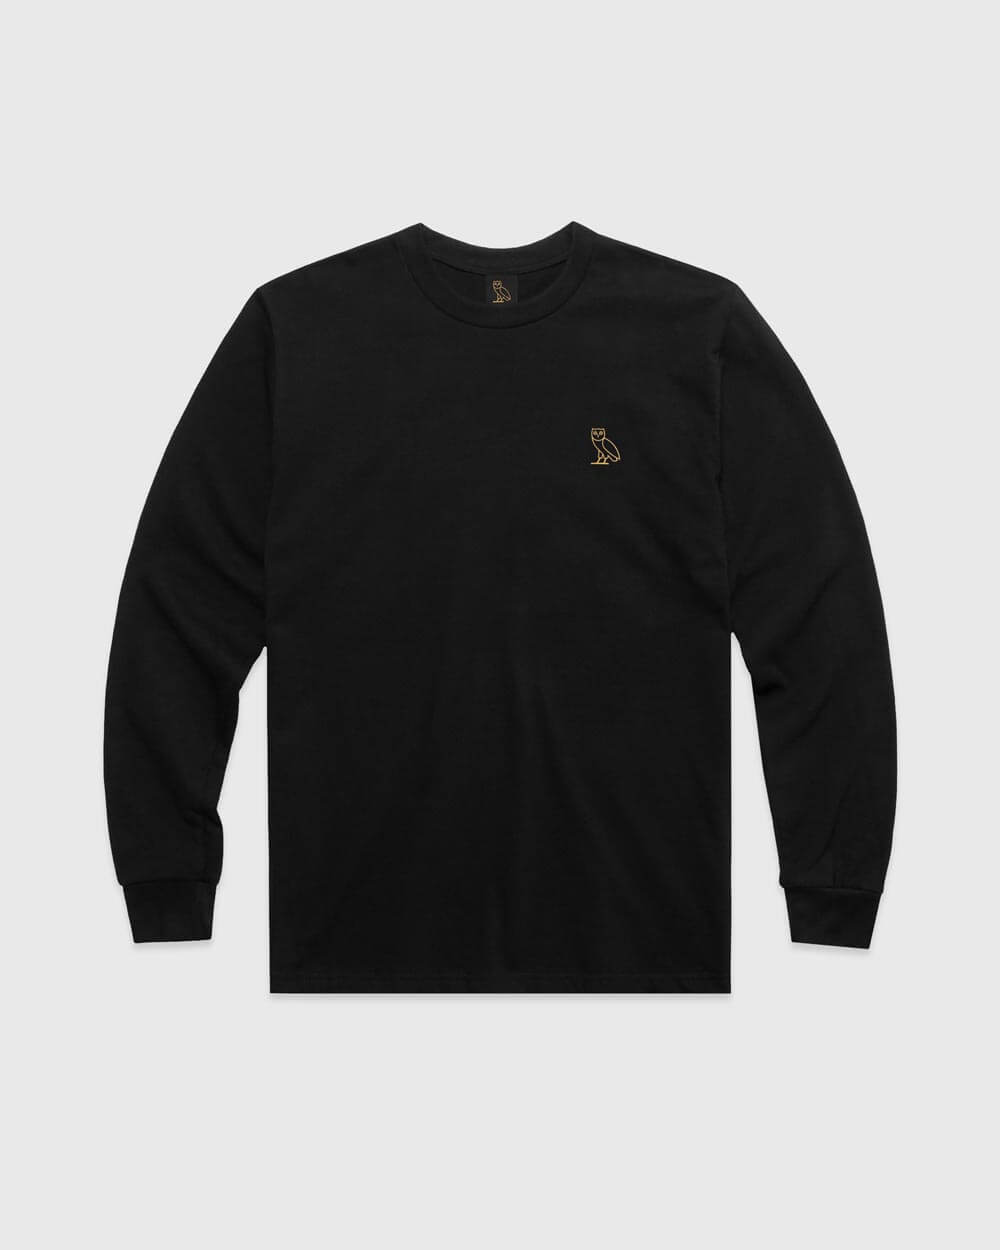 Owl longsleeve shirt black octobers very own online jpg 1000x1250 Ovo shirt 1fd1fbae7